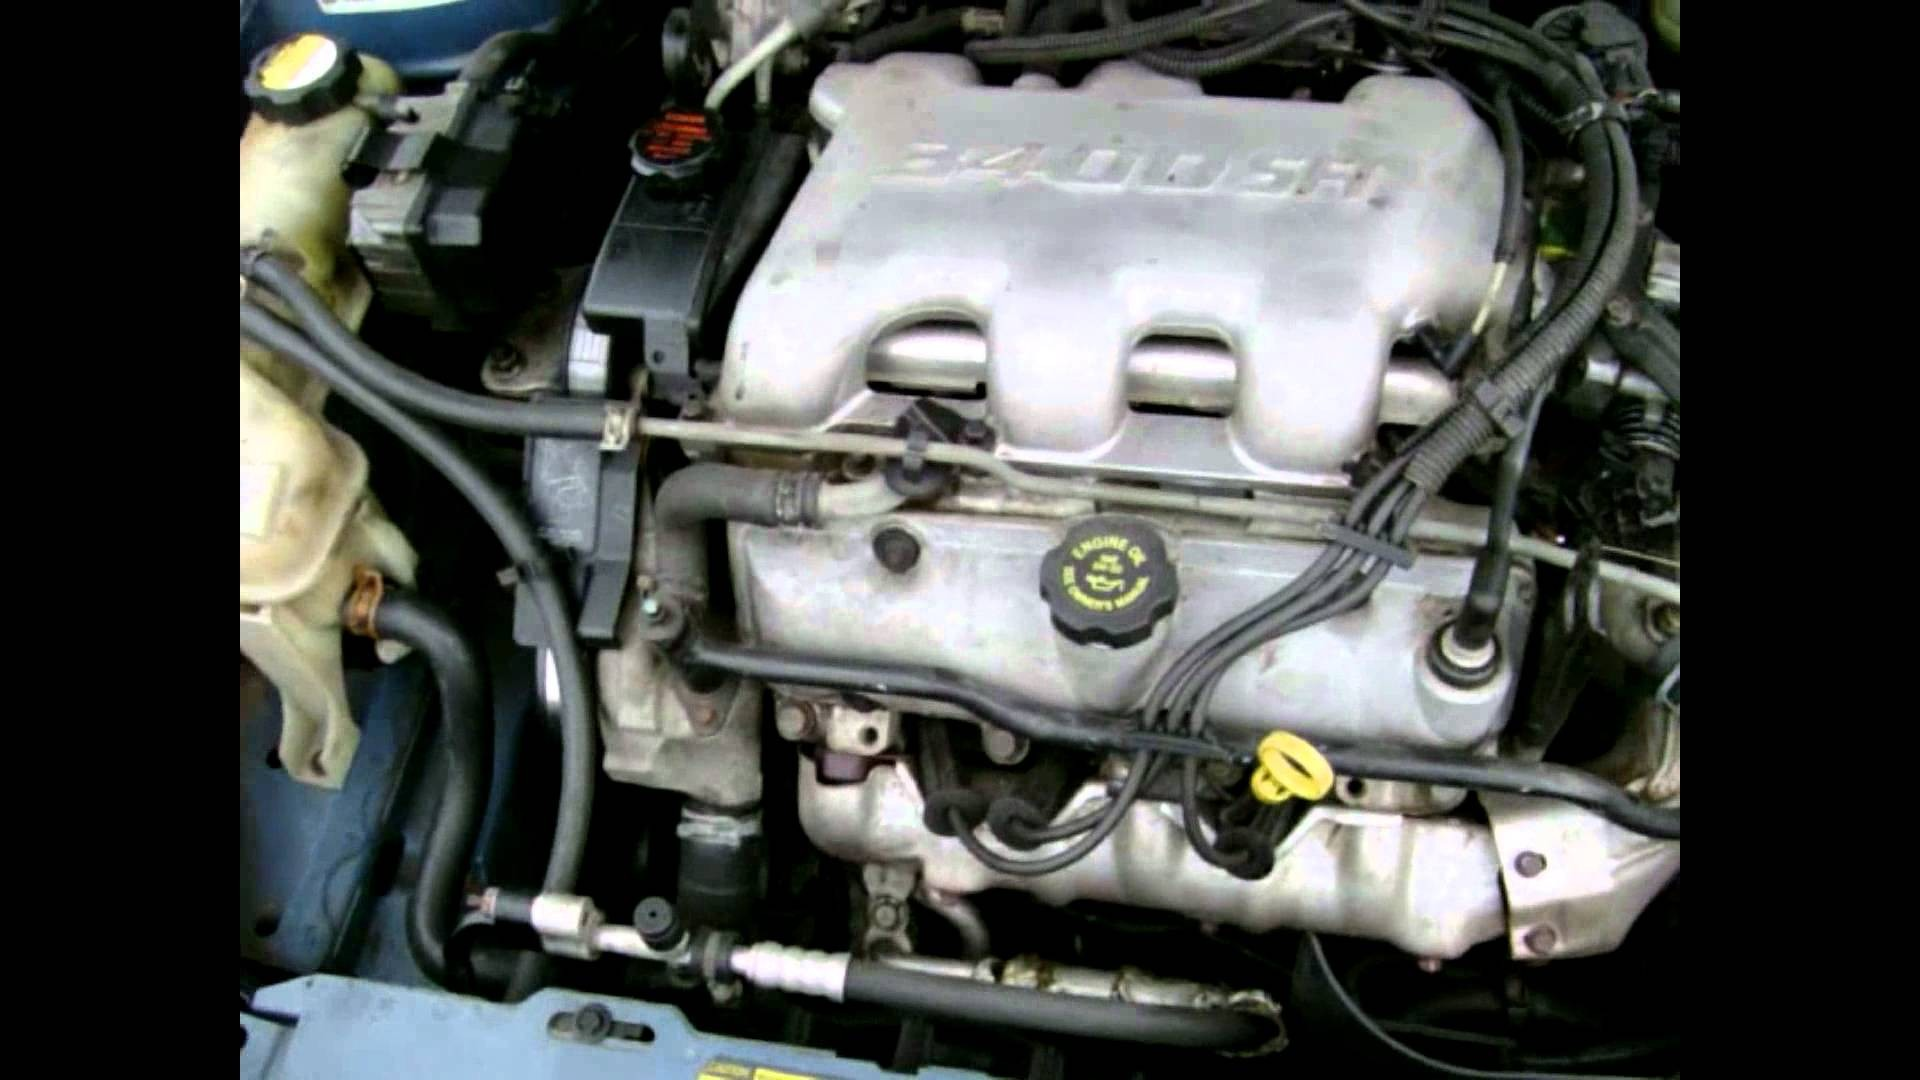 2001 Pontiac Aztek Engine Diagram Spark Plug Wires Remove Saturn Sl2 3400 Gm 3 4 Liter Motor Explanation And Discussion Of